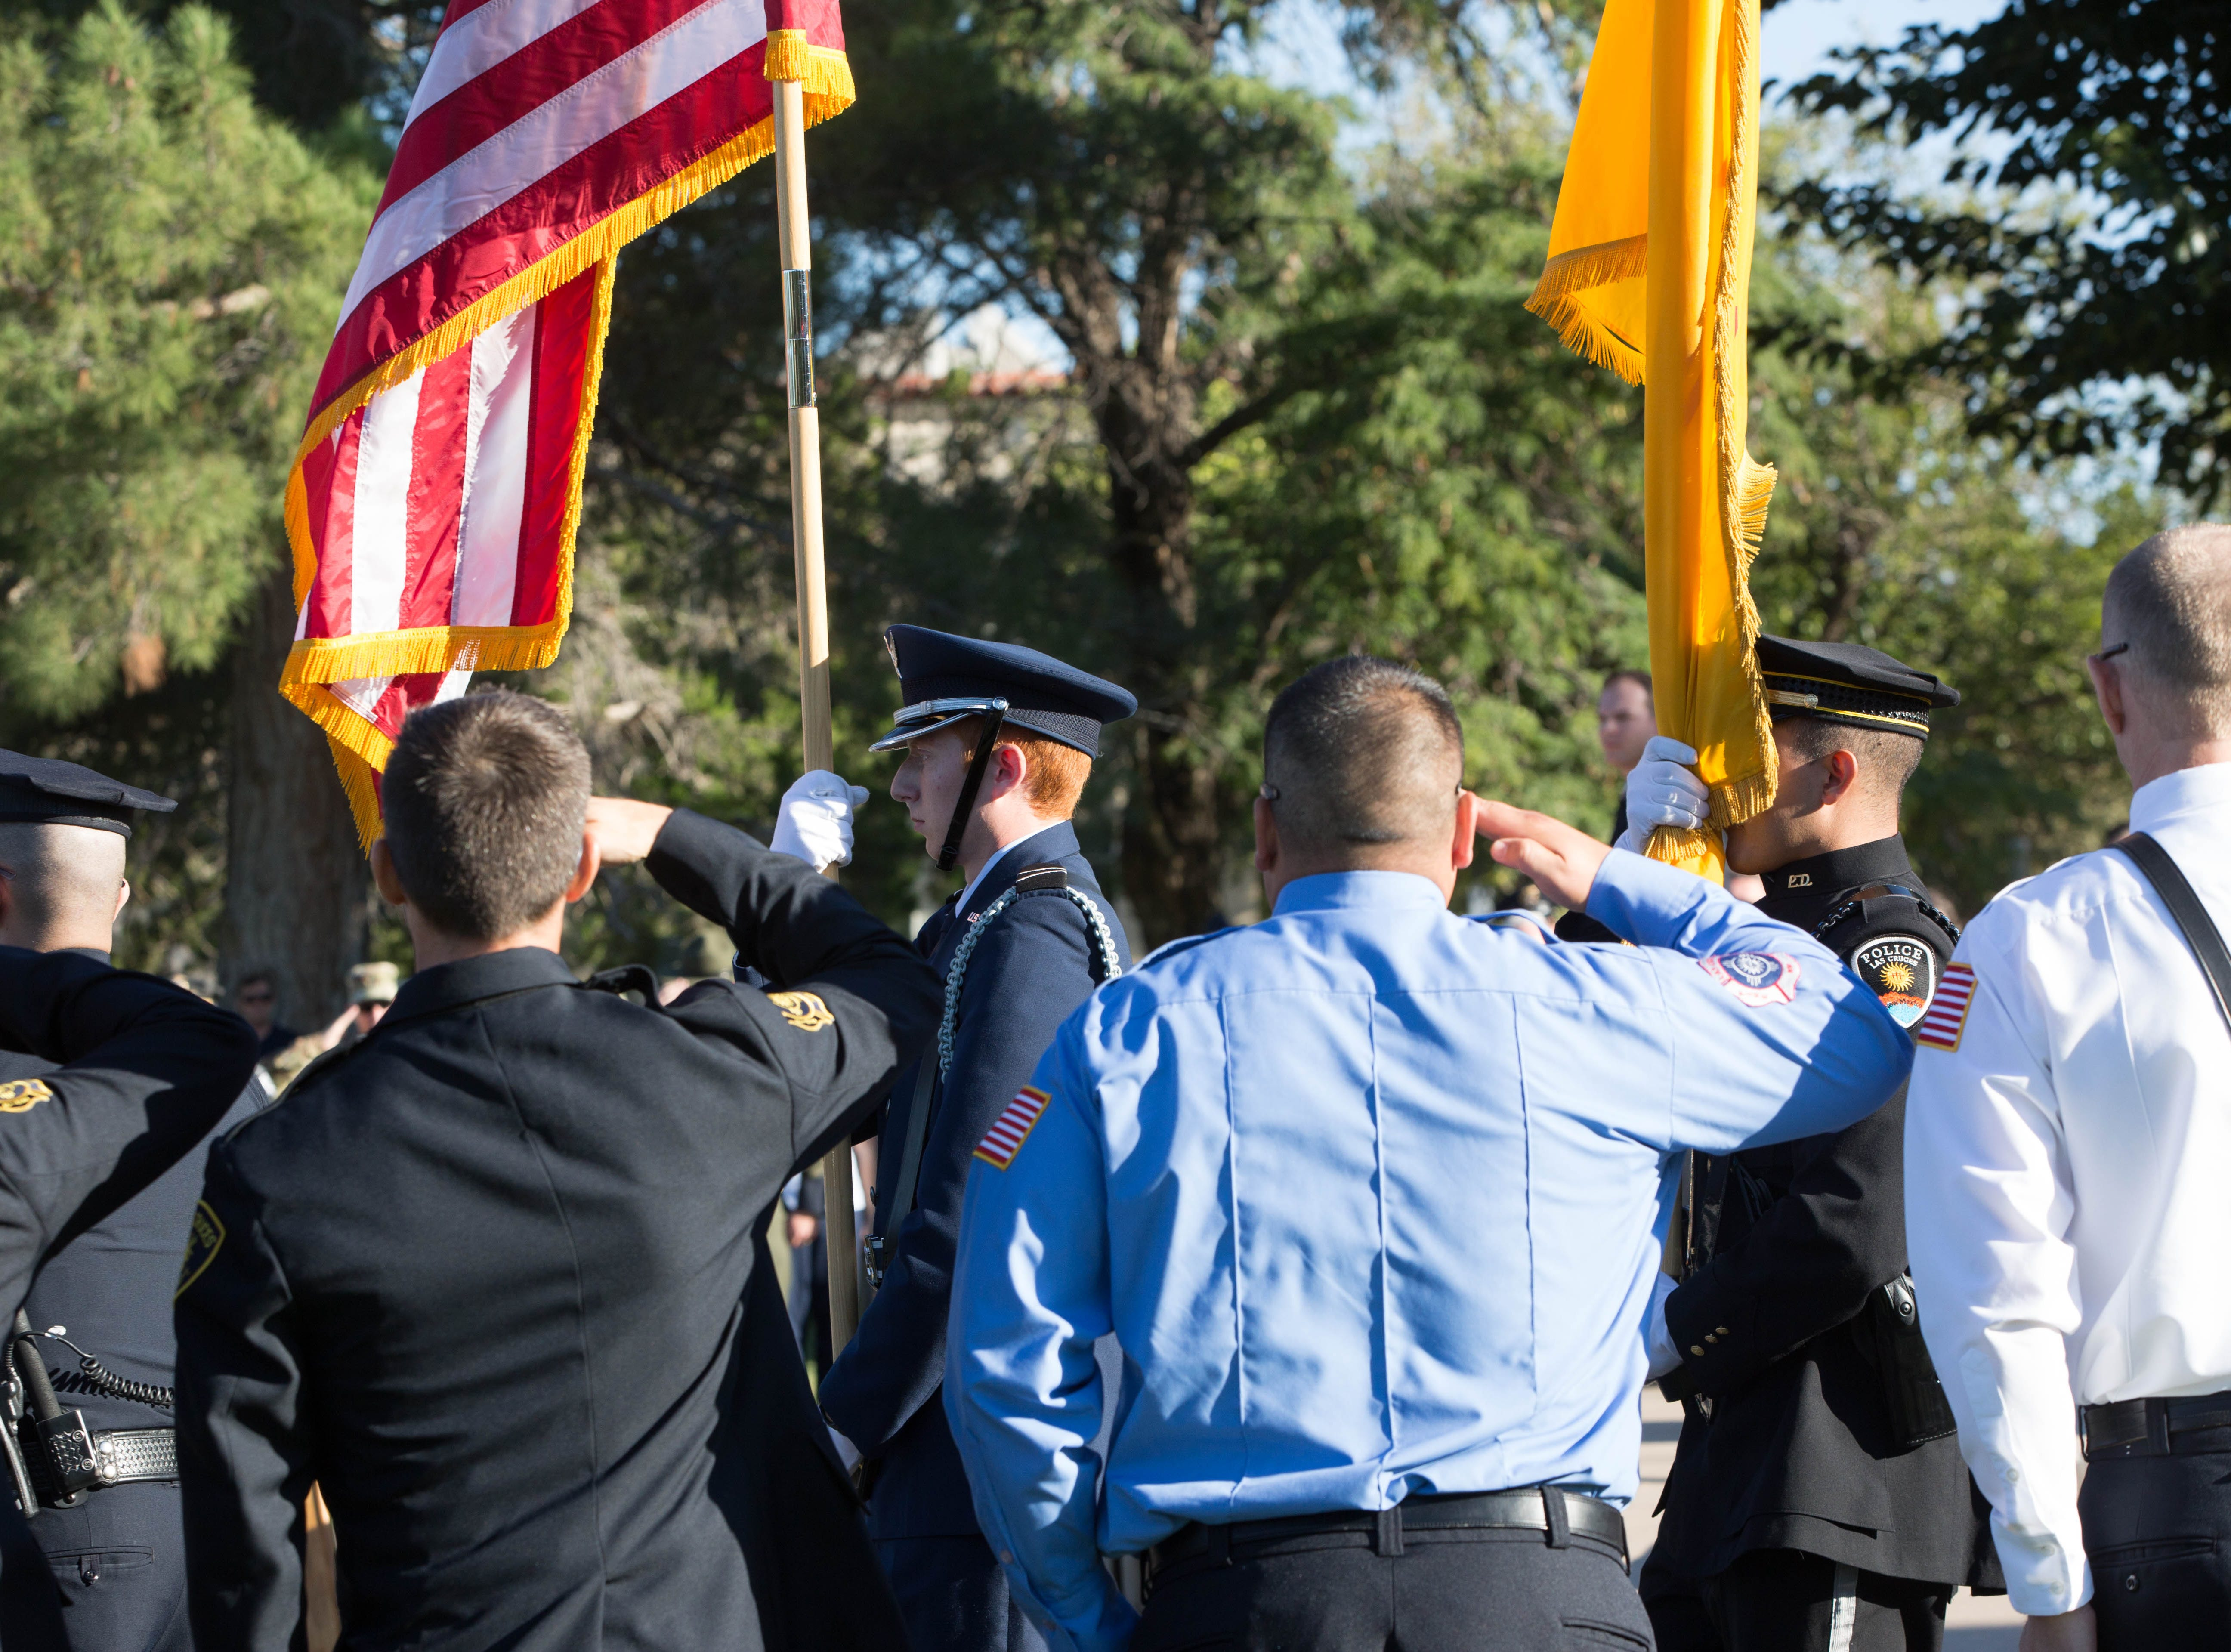 A line of firefighters, police officers and other first responders stand at attention during the opening of the Patriot Day ceremony at New Mexico State University, Tuesday, Sept. 11, 2018. The ceremony was held at New Mexico State University to commemorate the men and women that lost their lives in the 9/11 attacks as well as to thank first responders for their service.